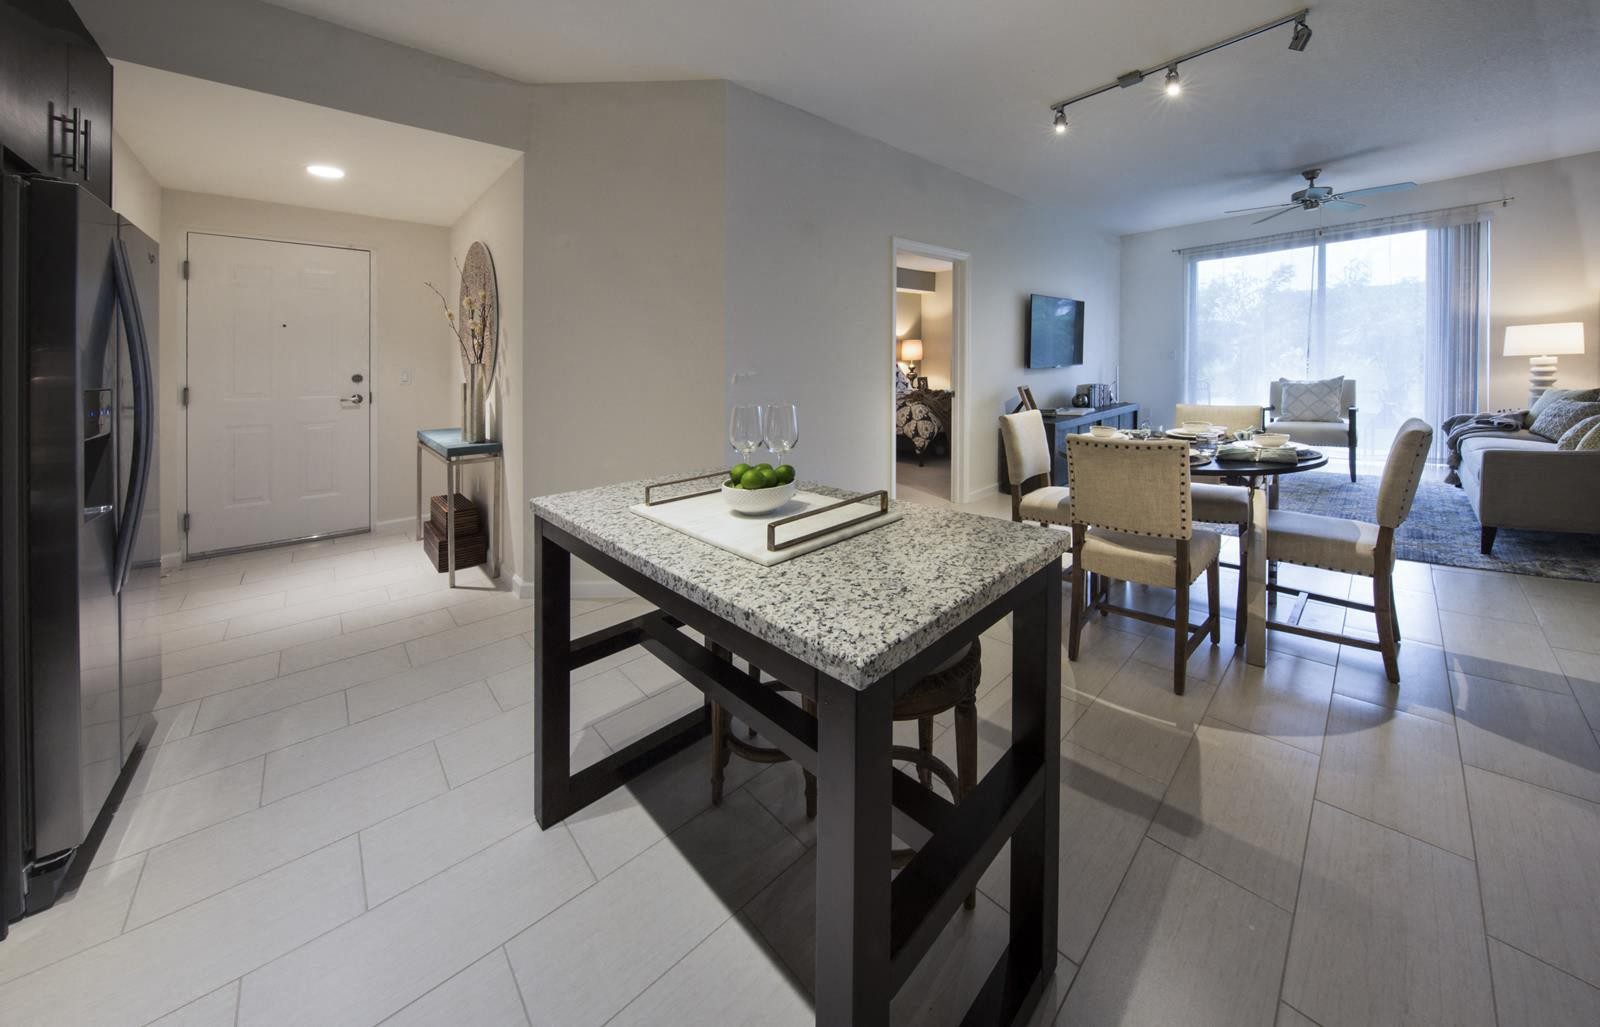 Doral View for rent